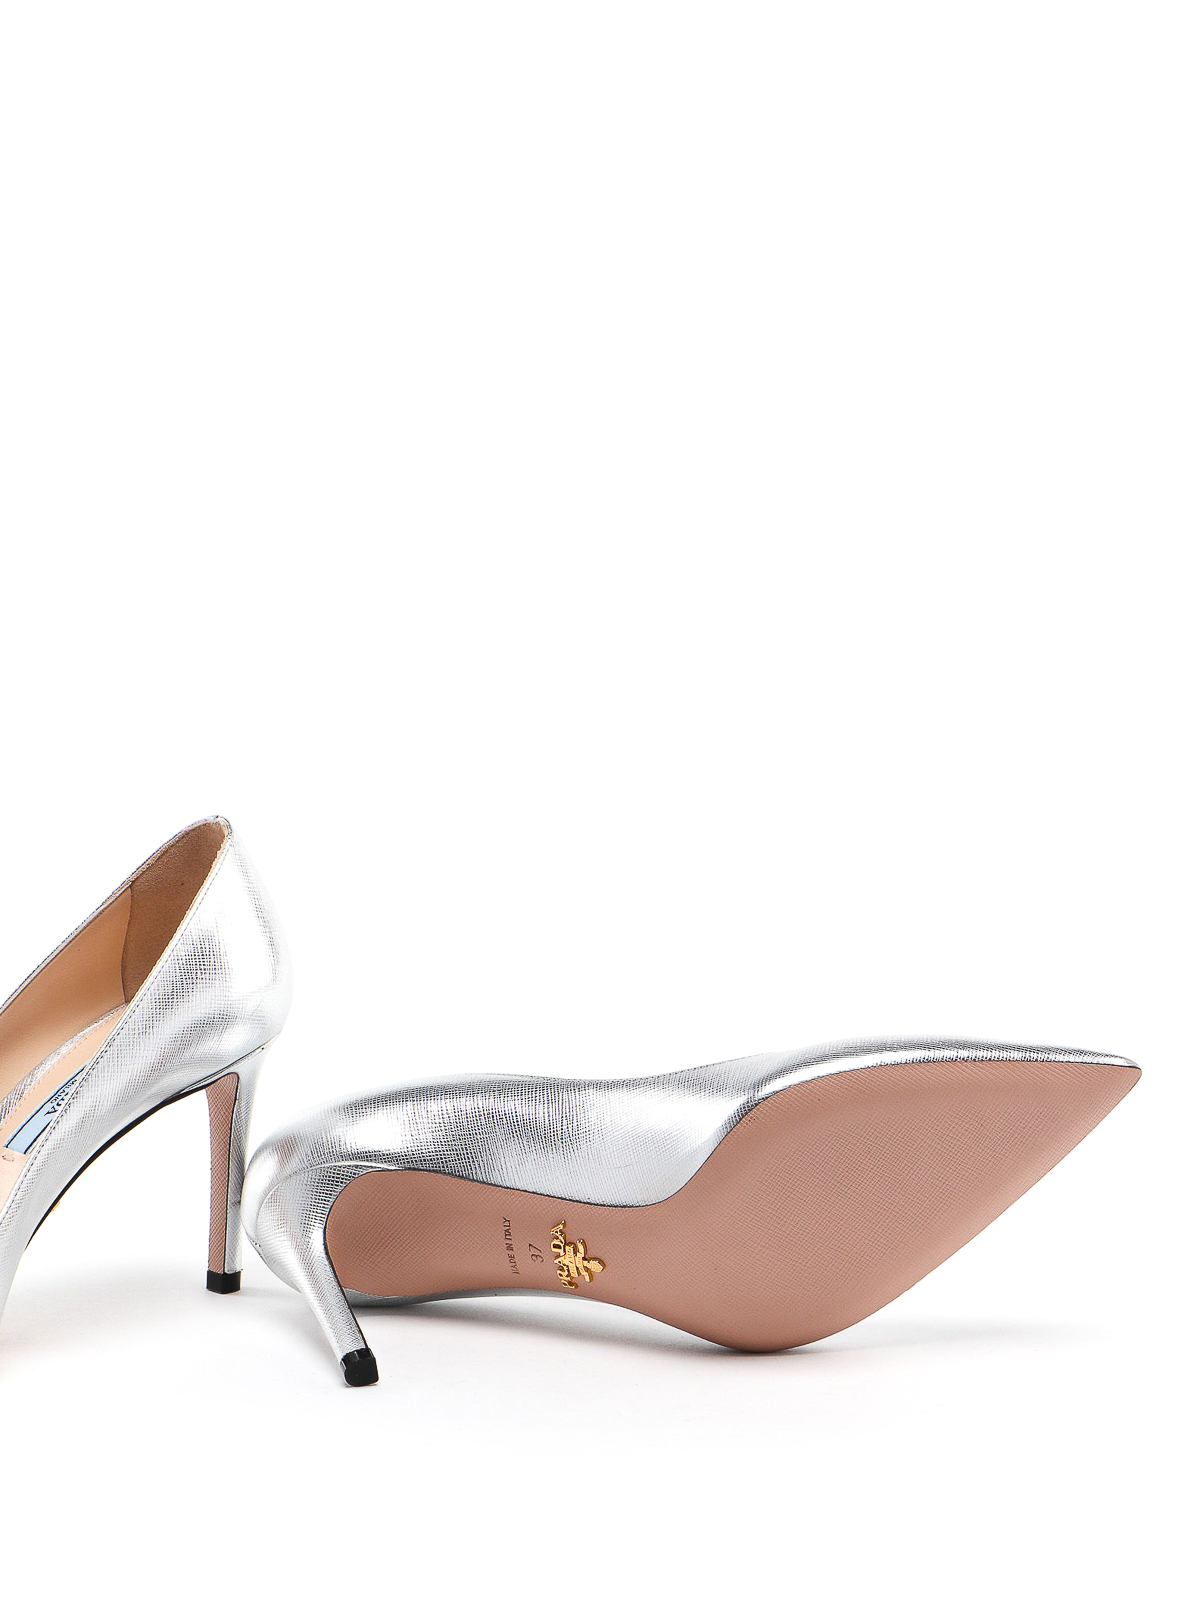 Prada Pumps Silber Pumps 1I834I3A9SF85118